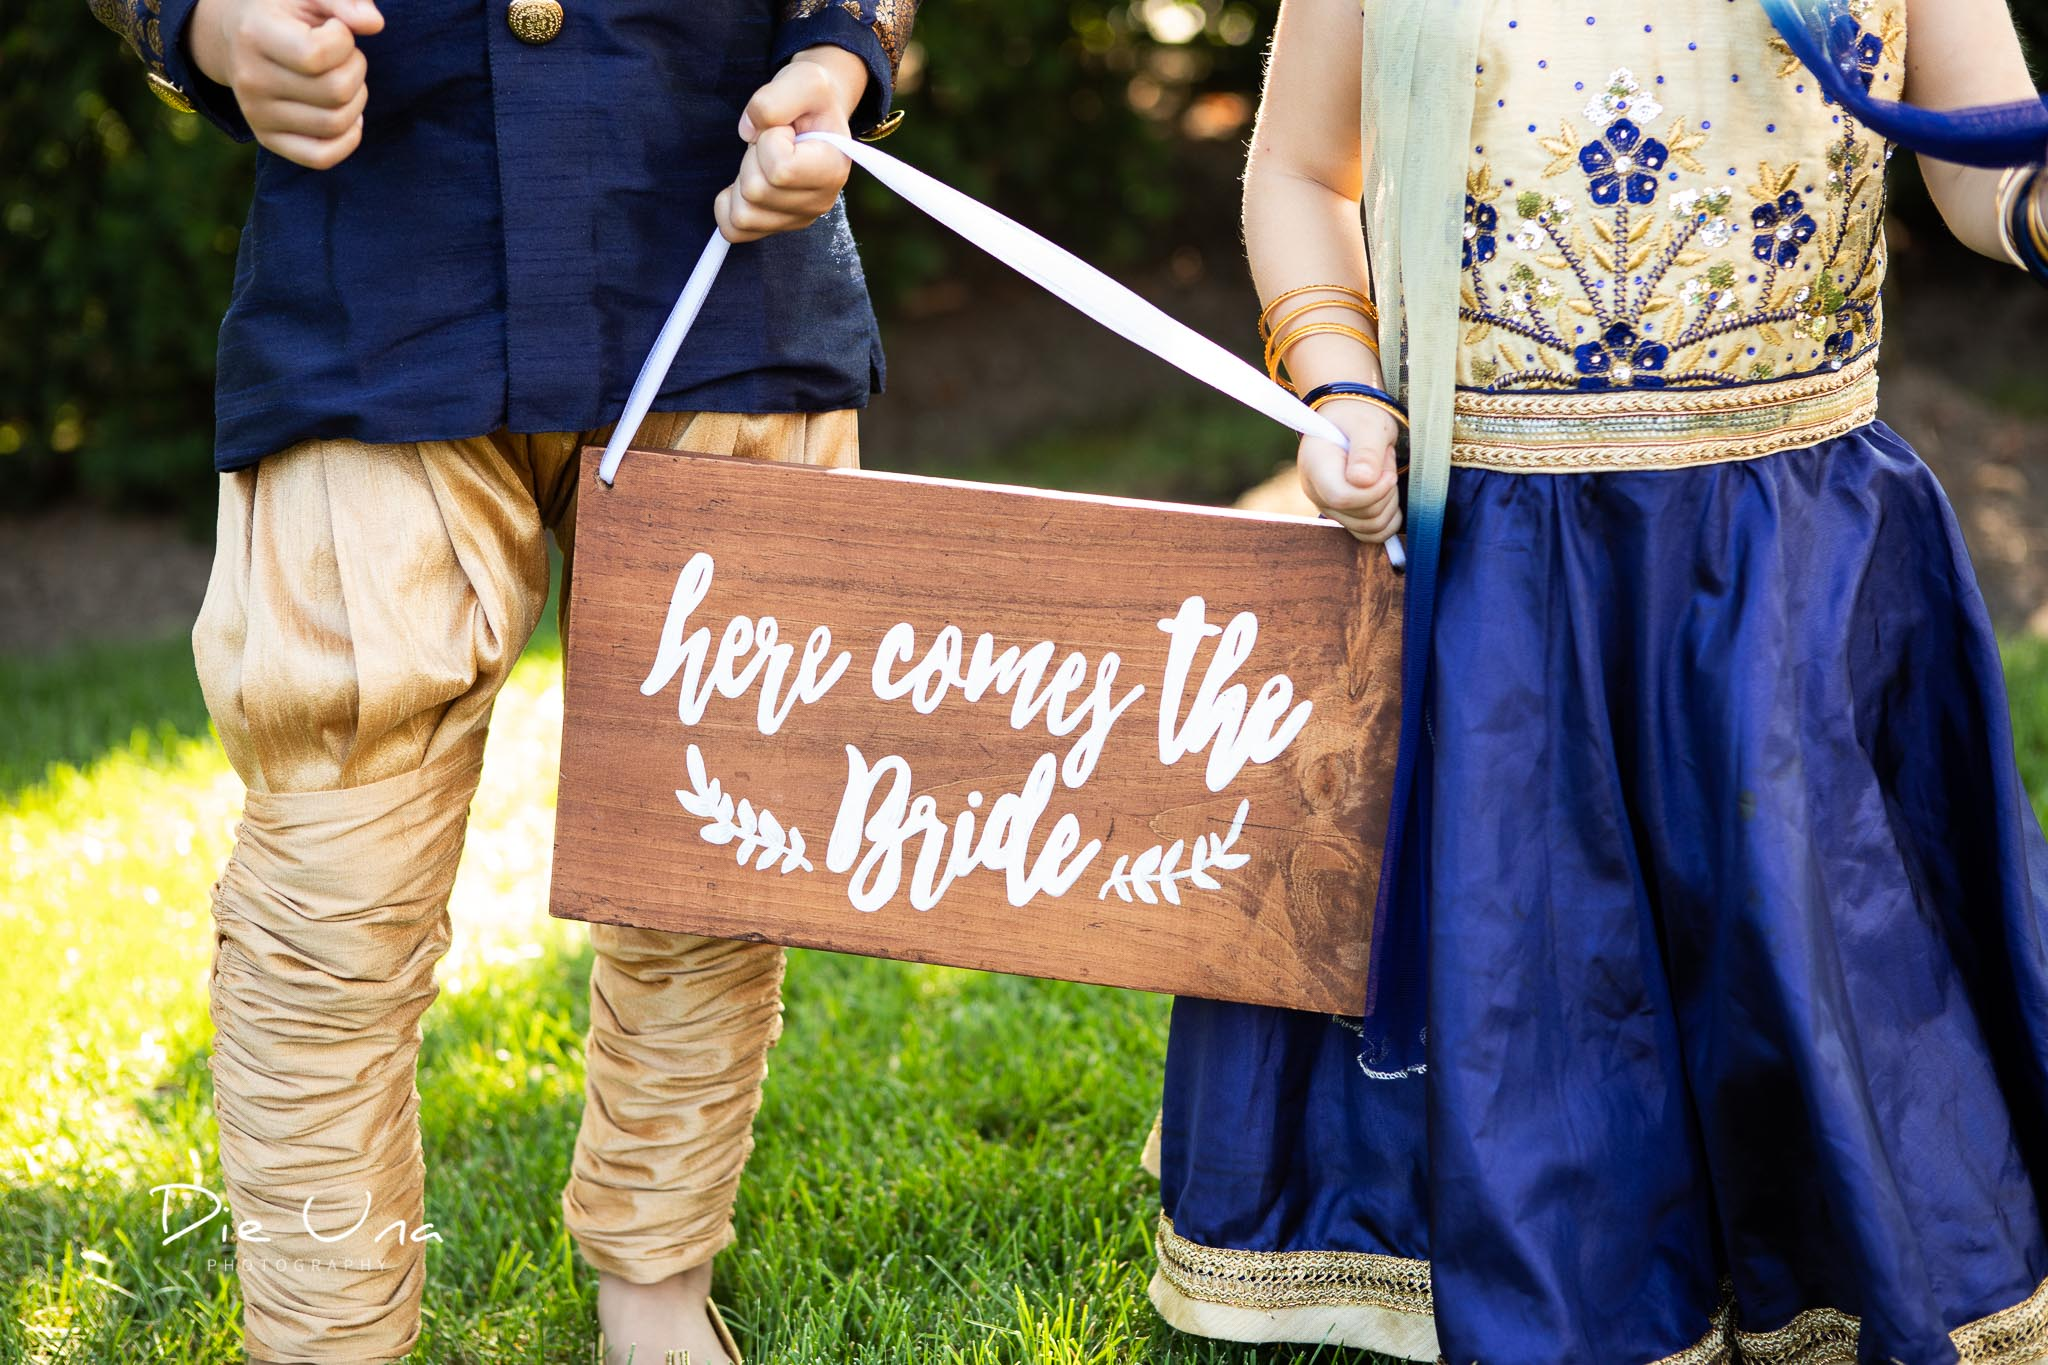 here comes the bride sign being held by flower girl and ringbearer in Hindu wedding.jpg